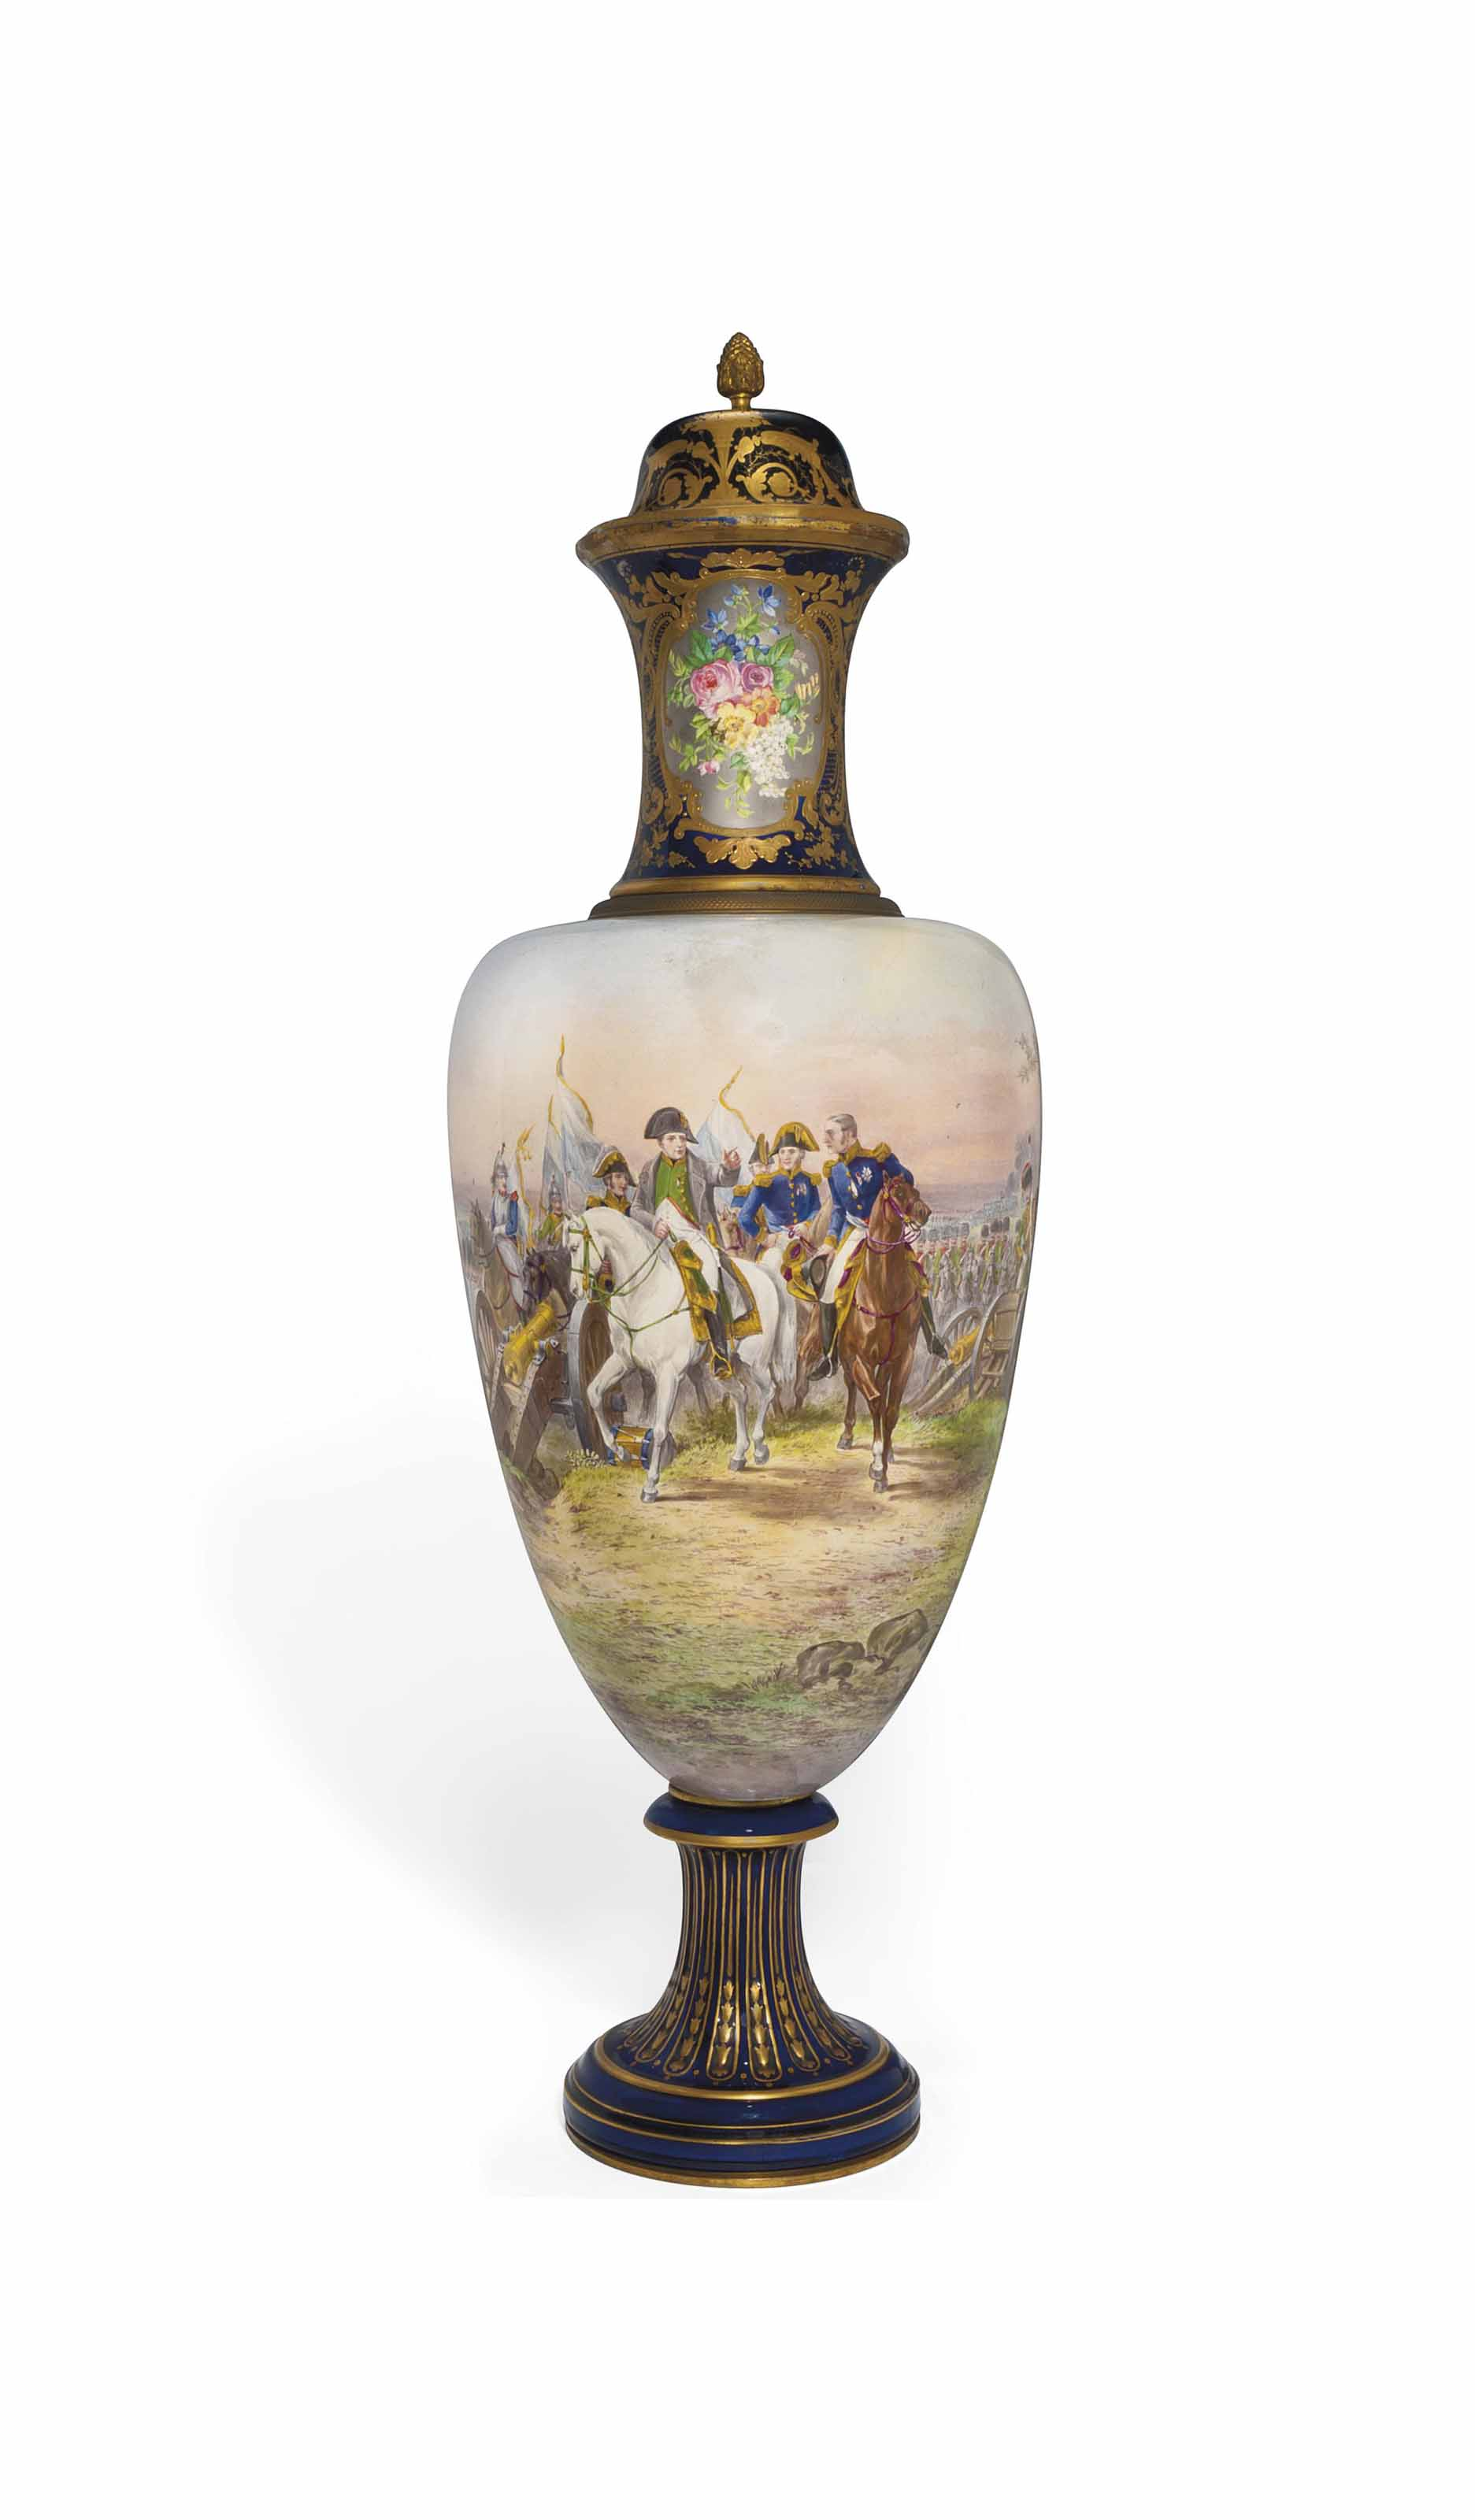 A LARGE SEVRES-STYLE VASE AND A COVER